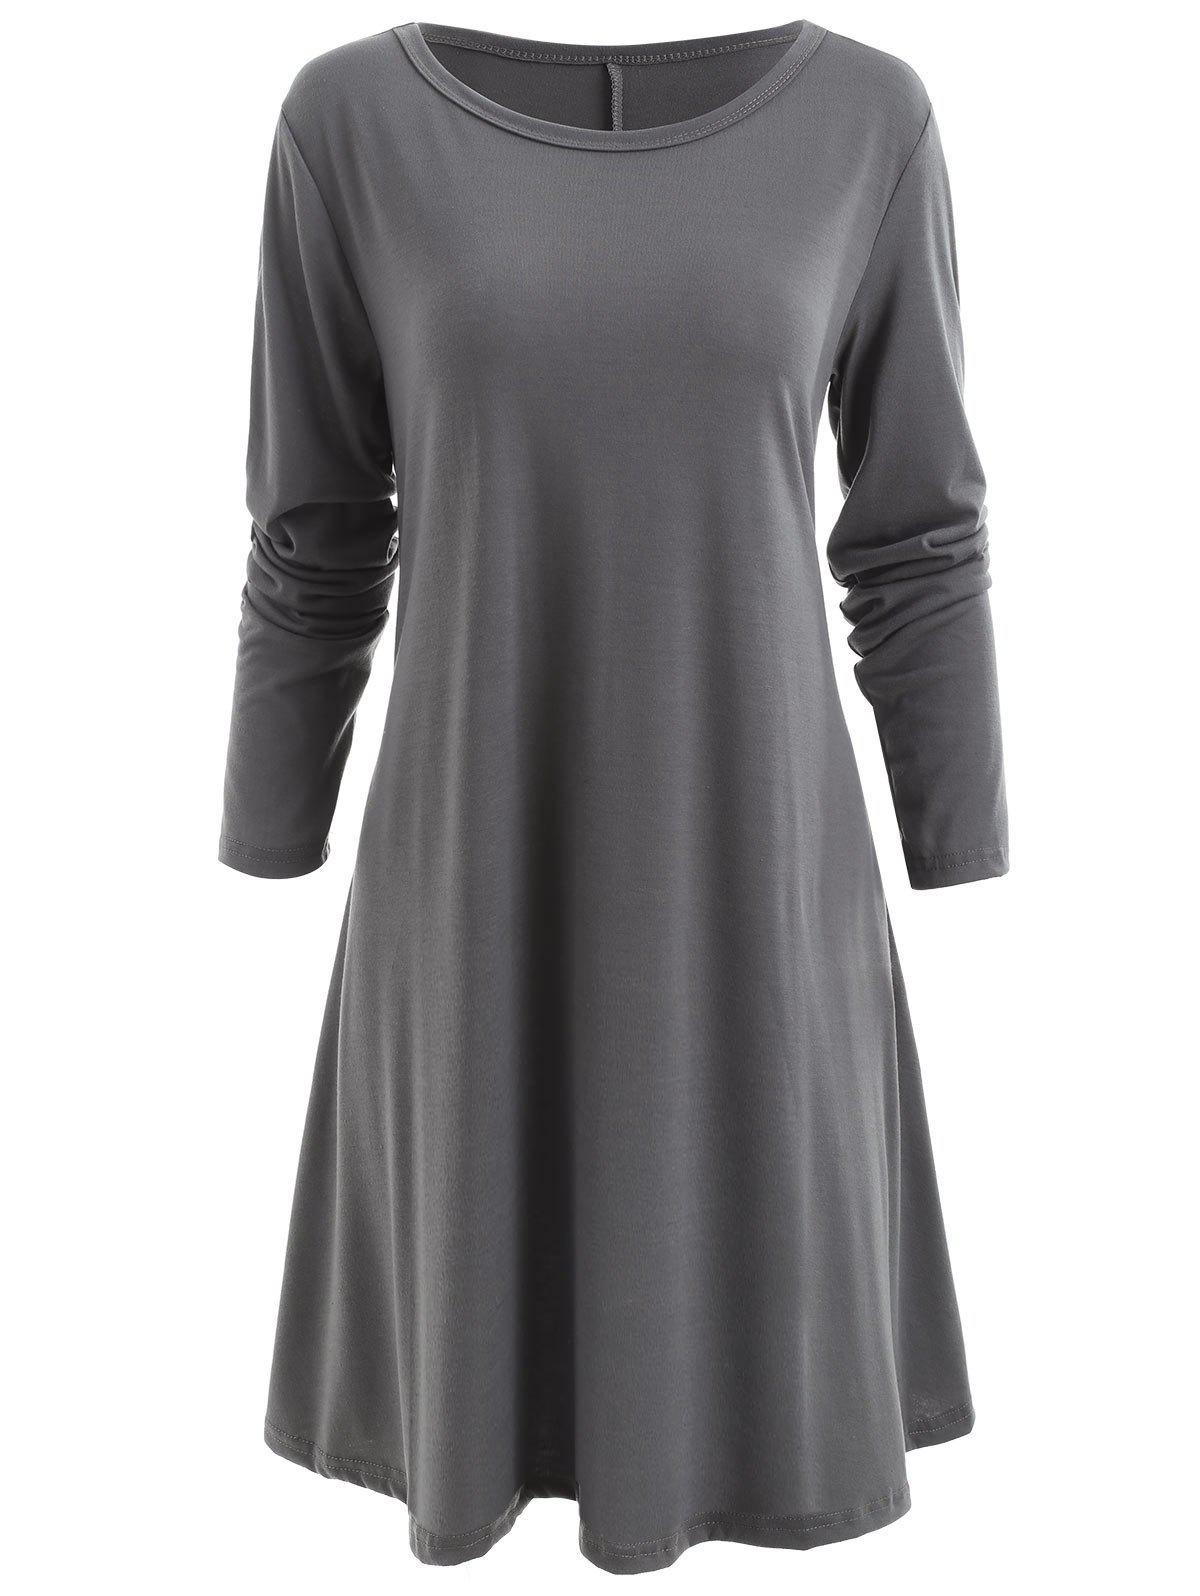 Long Sleeve Tunic T-shirt Dress - DARK GRAY 2XL